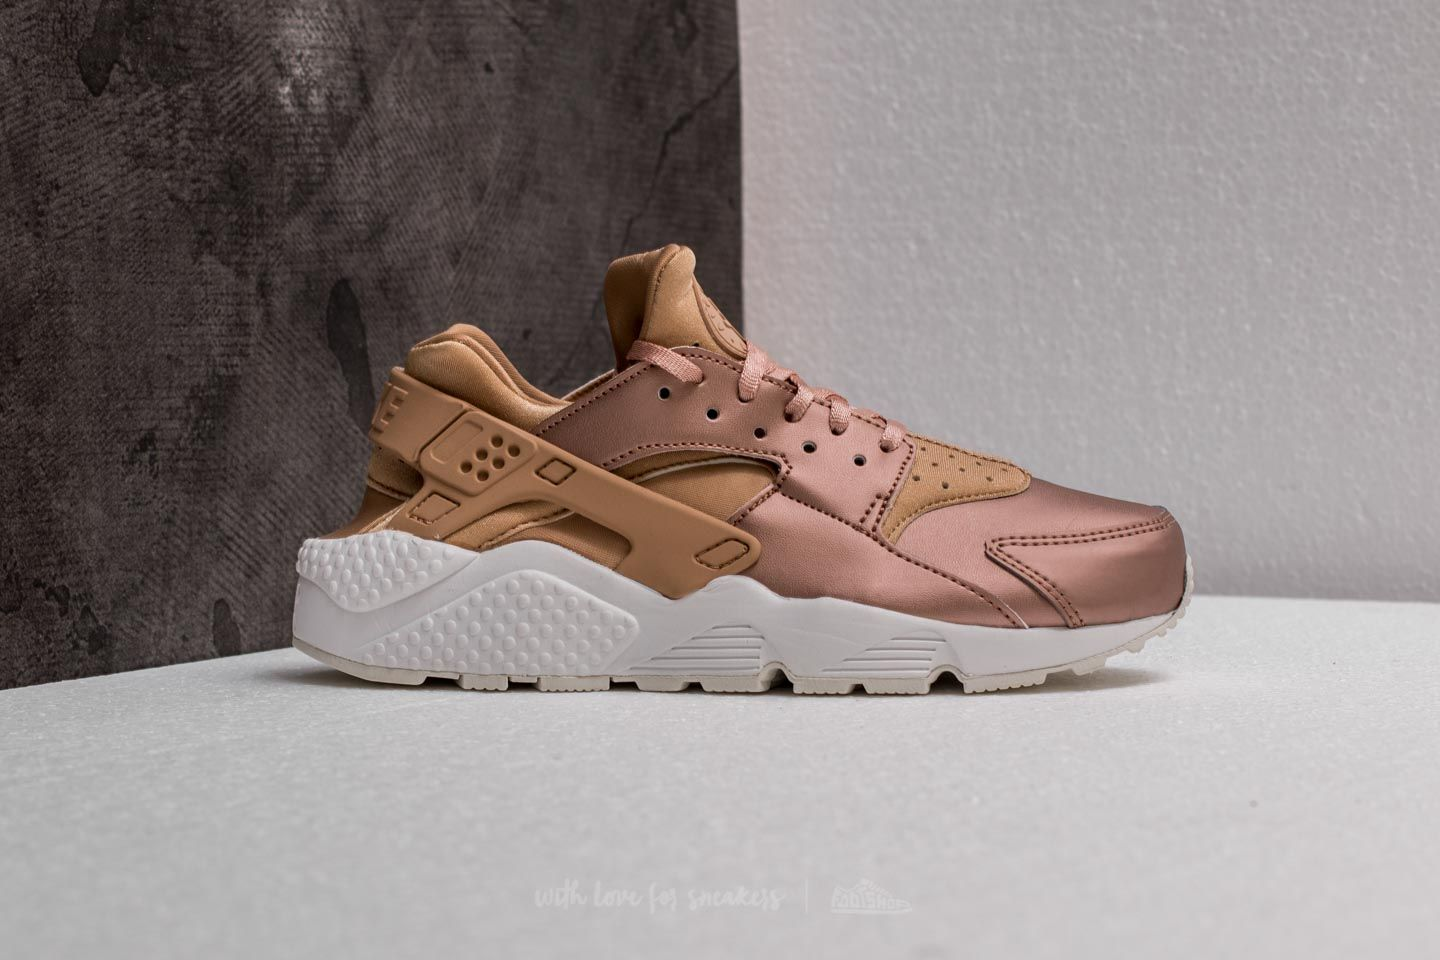 0a72df284912 ... top quality nike wmns air huarache run premium txt elm metallic red  bronze at a great